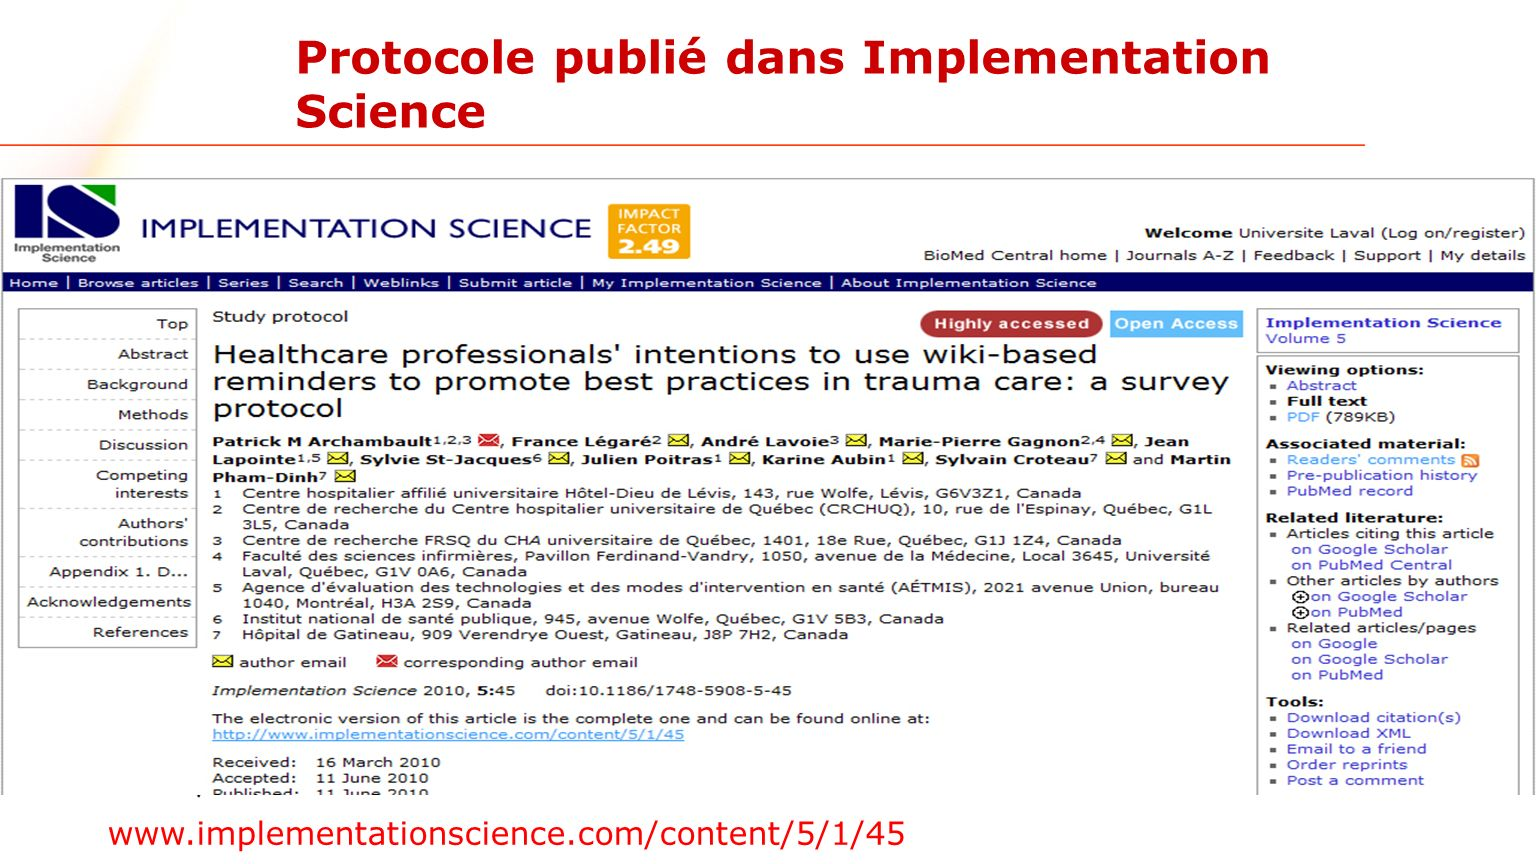 Protocole publié dans Implementation Science www.implementationscience.com/content/5/1/45